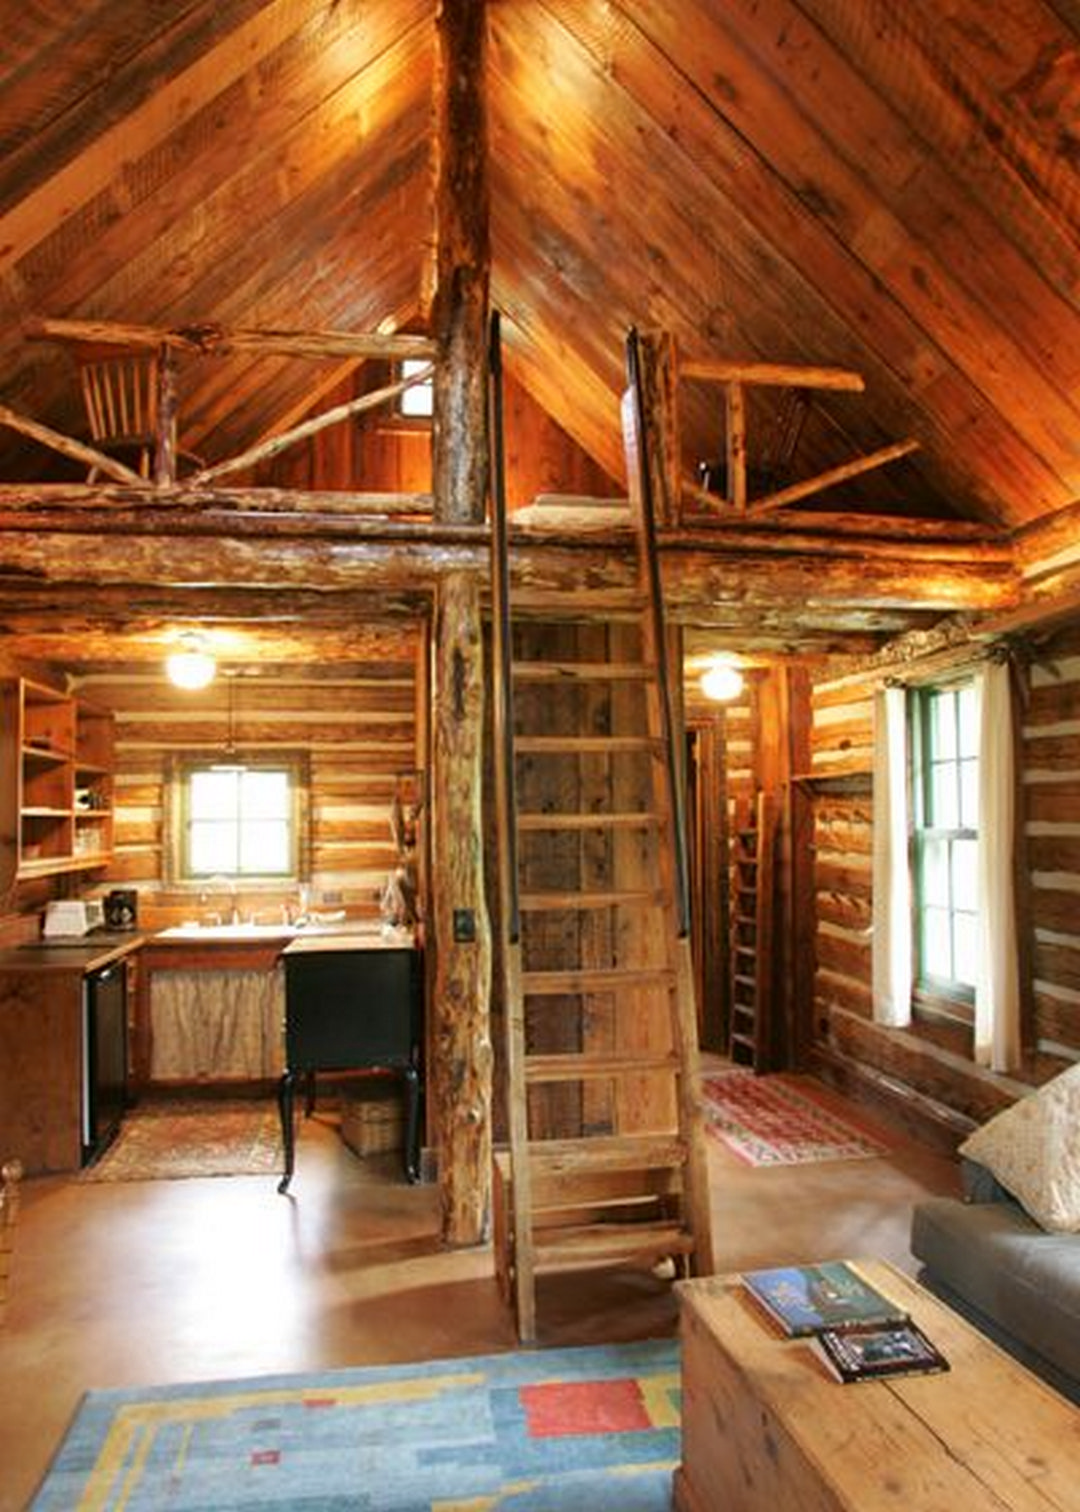 49 gorgeous rustic cabin interior ideas cabin interiors for Rustic cabin designs